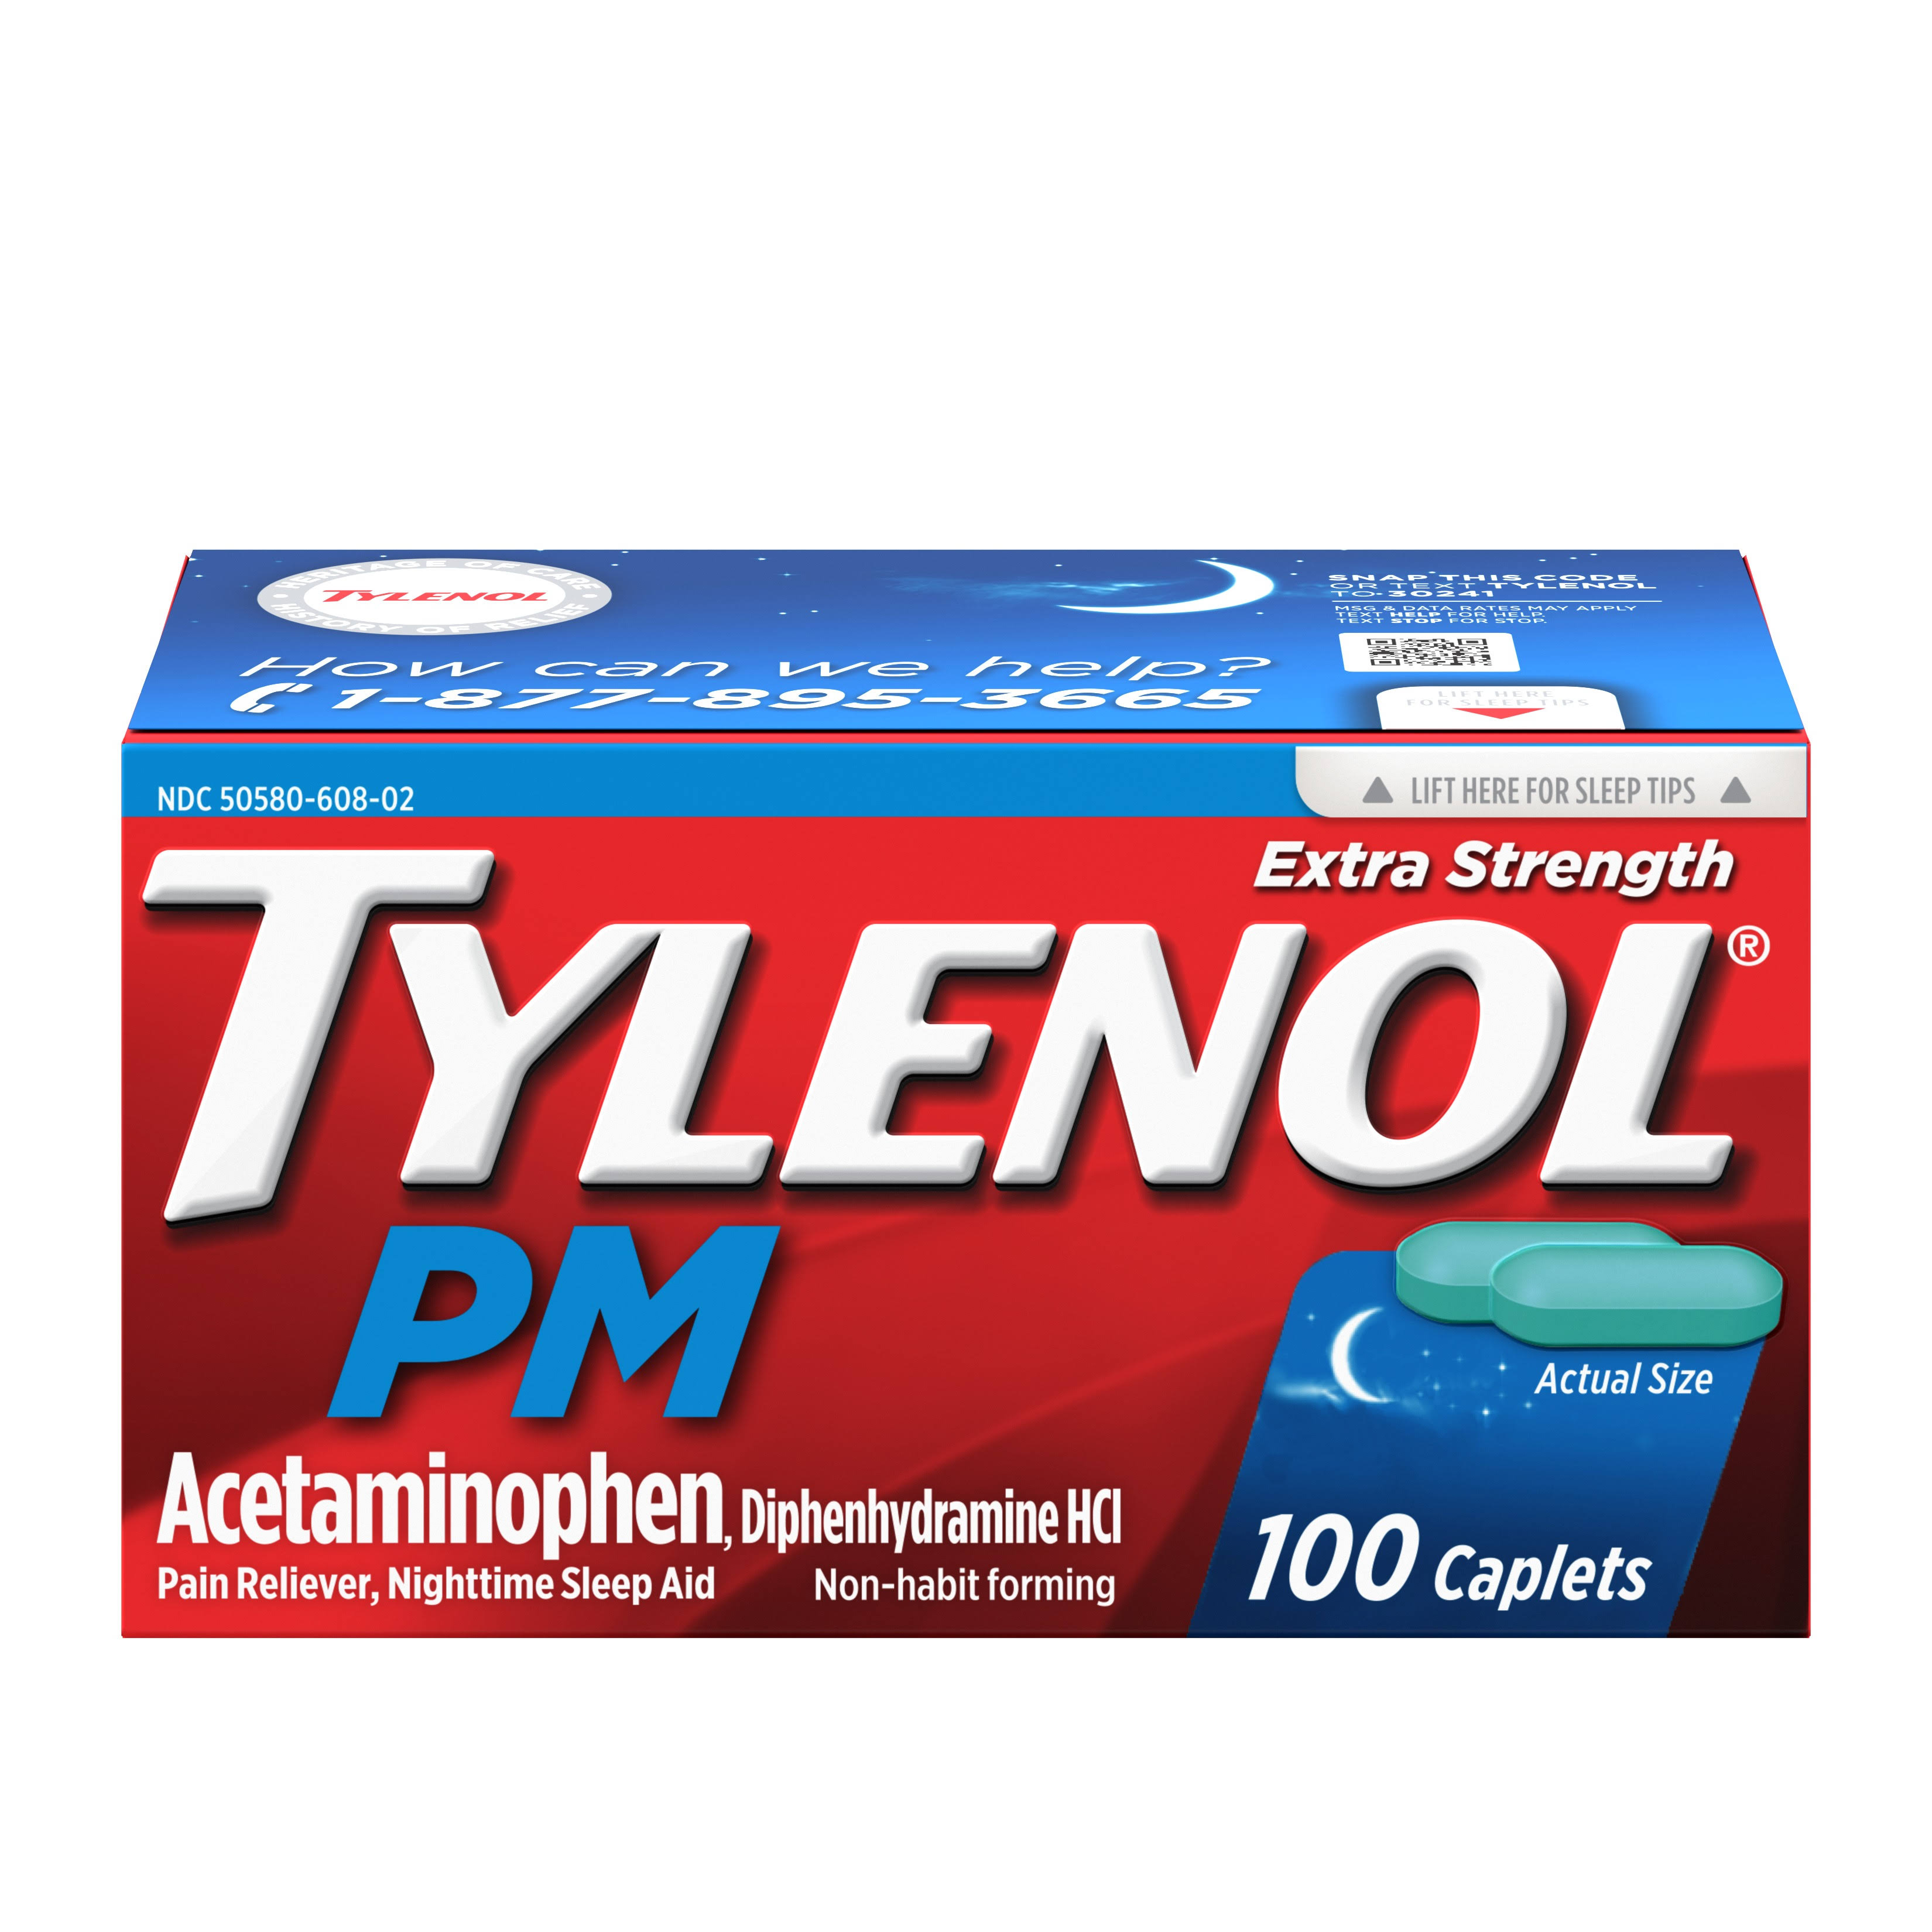 Tylenol PM Acetaminophen Pain Reliever - 500mg, 100 Caplets